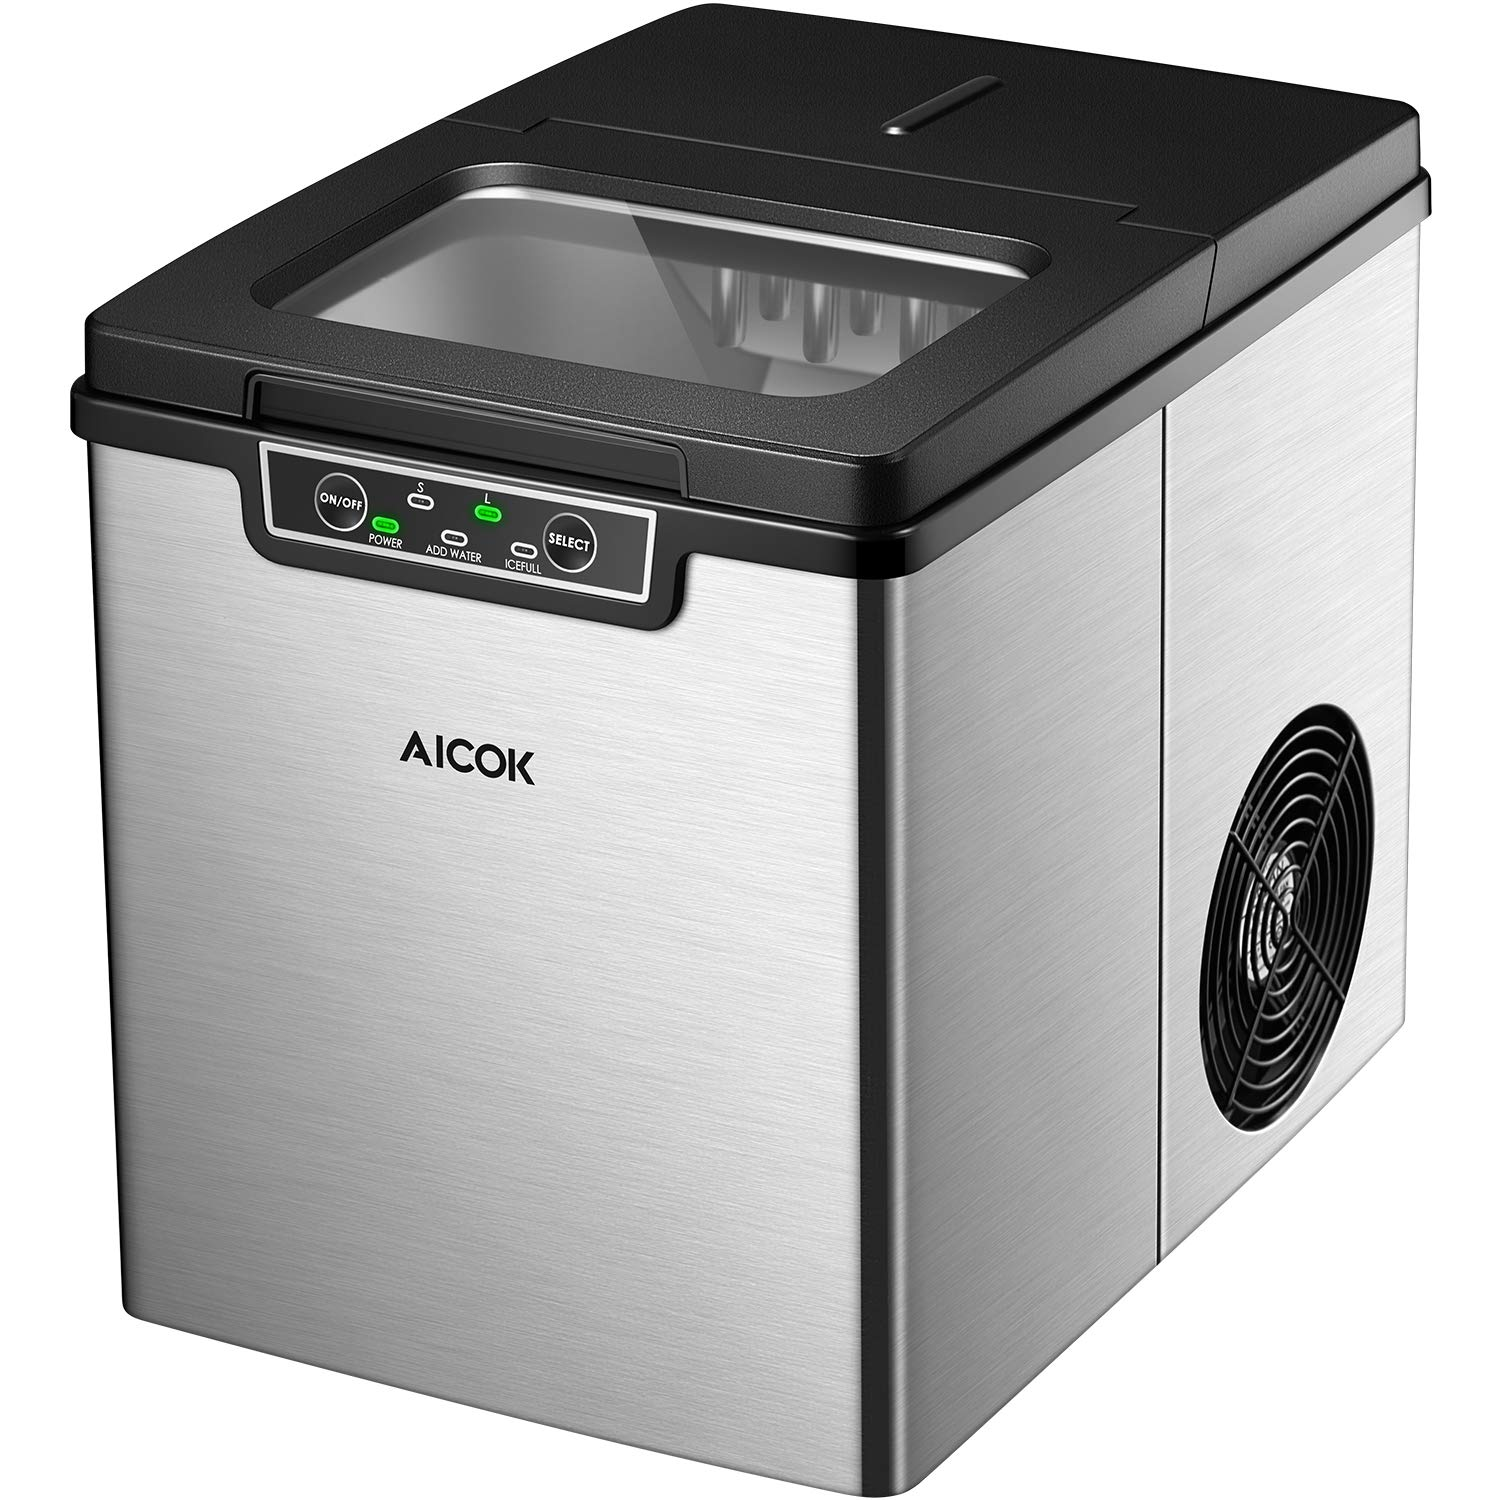 AICOK Portable Ice Maker, Quiet Counter Top Ice Machine with 2 Quart Water Tank and Ice Scoop, Stainless Steel Ice Maker Machine, Bullet-Shaped Ice Ready in 6 Minutes, 26 lbs in 24 Hours